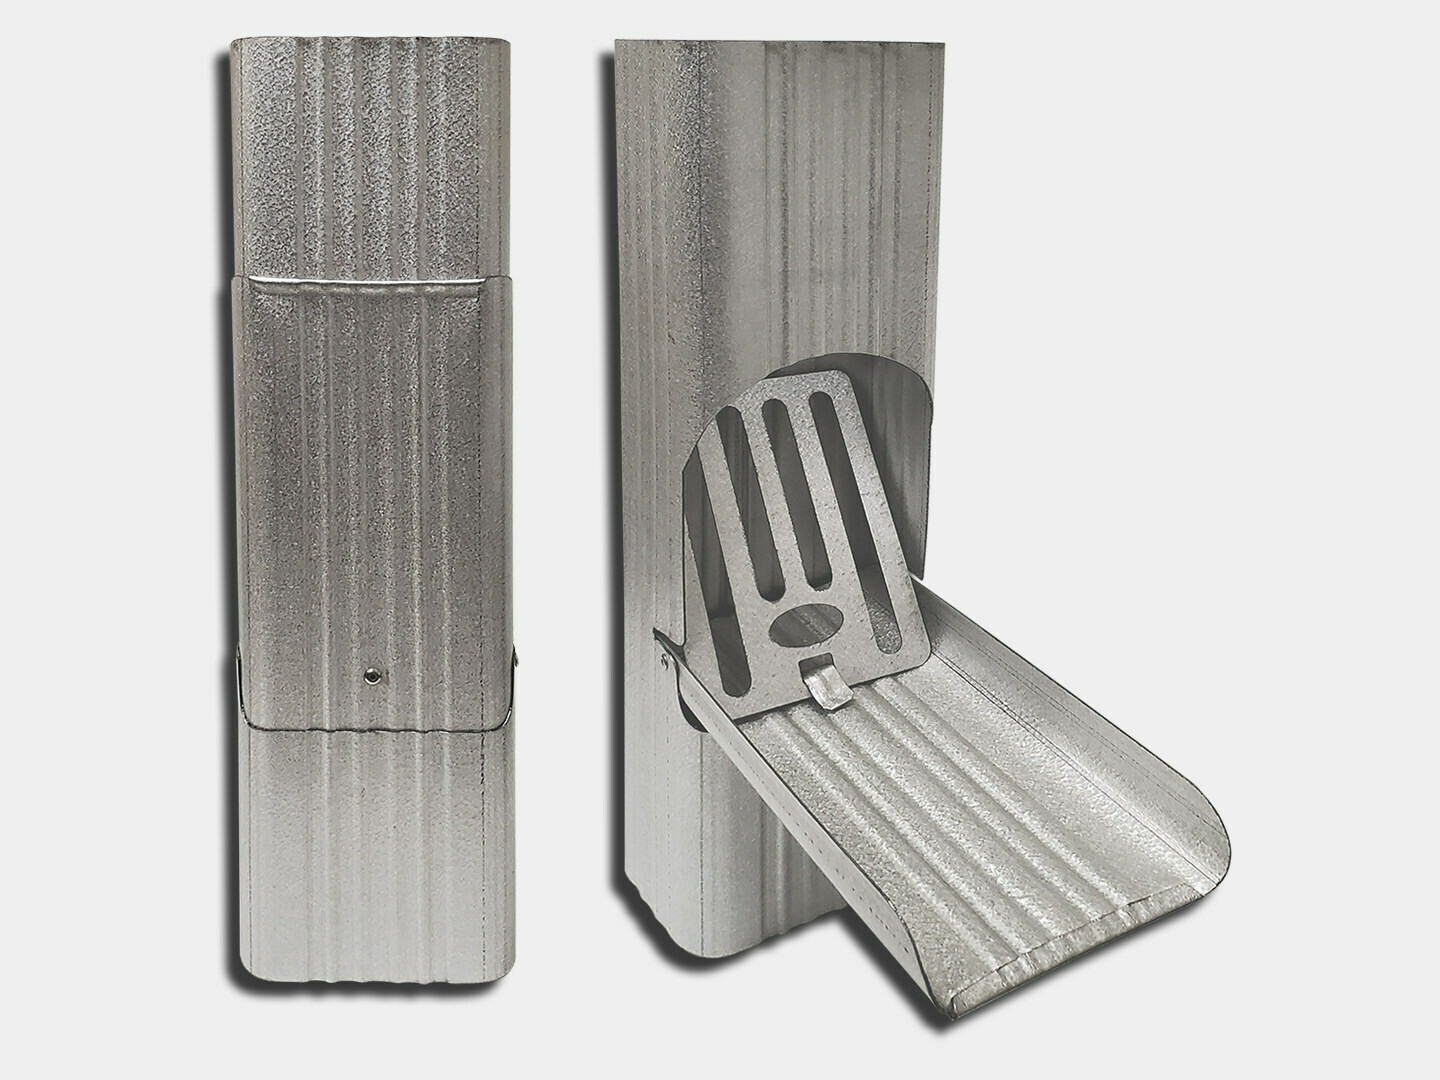 Square Corrugated Galvalume Downspout Cleanout